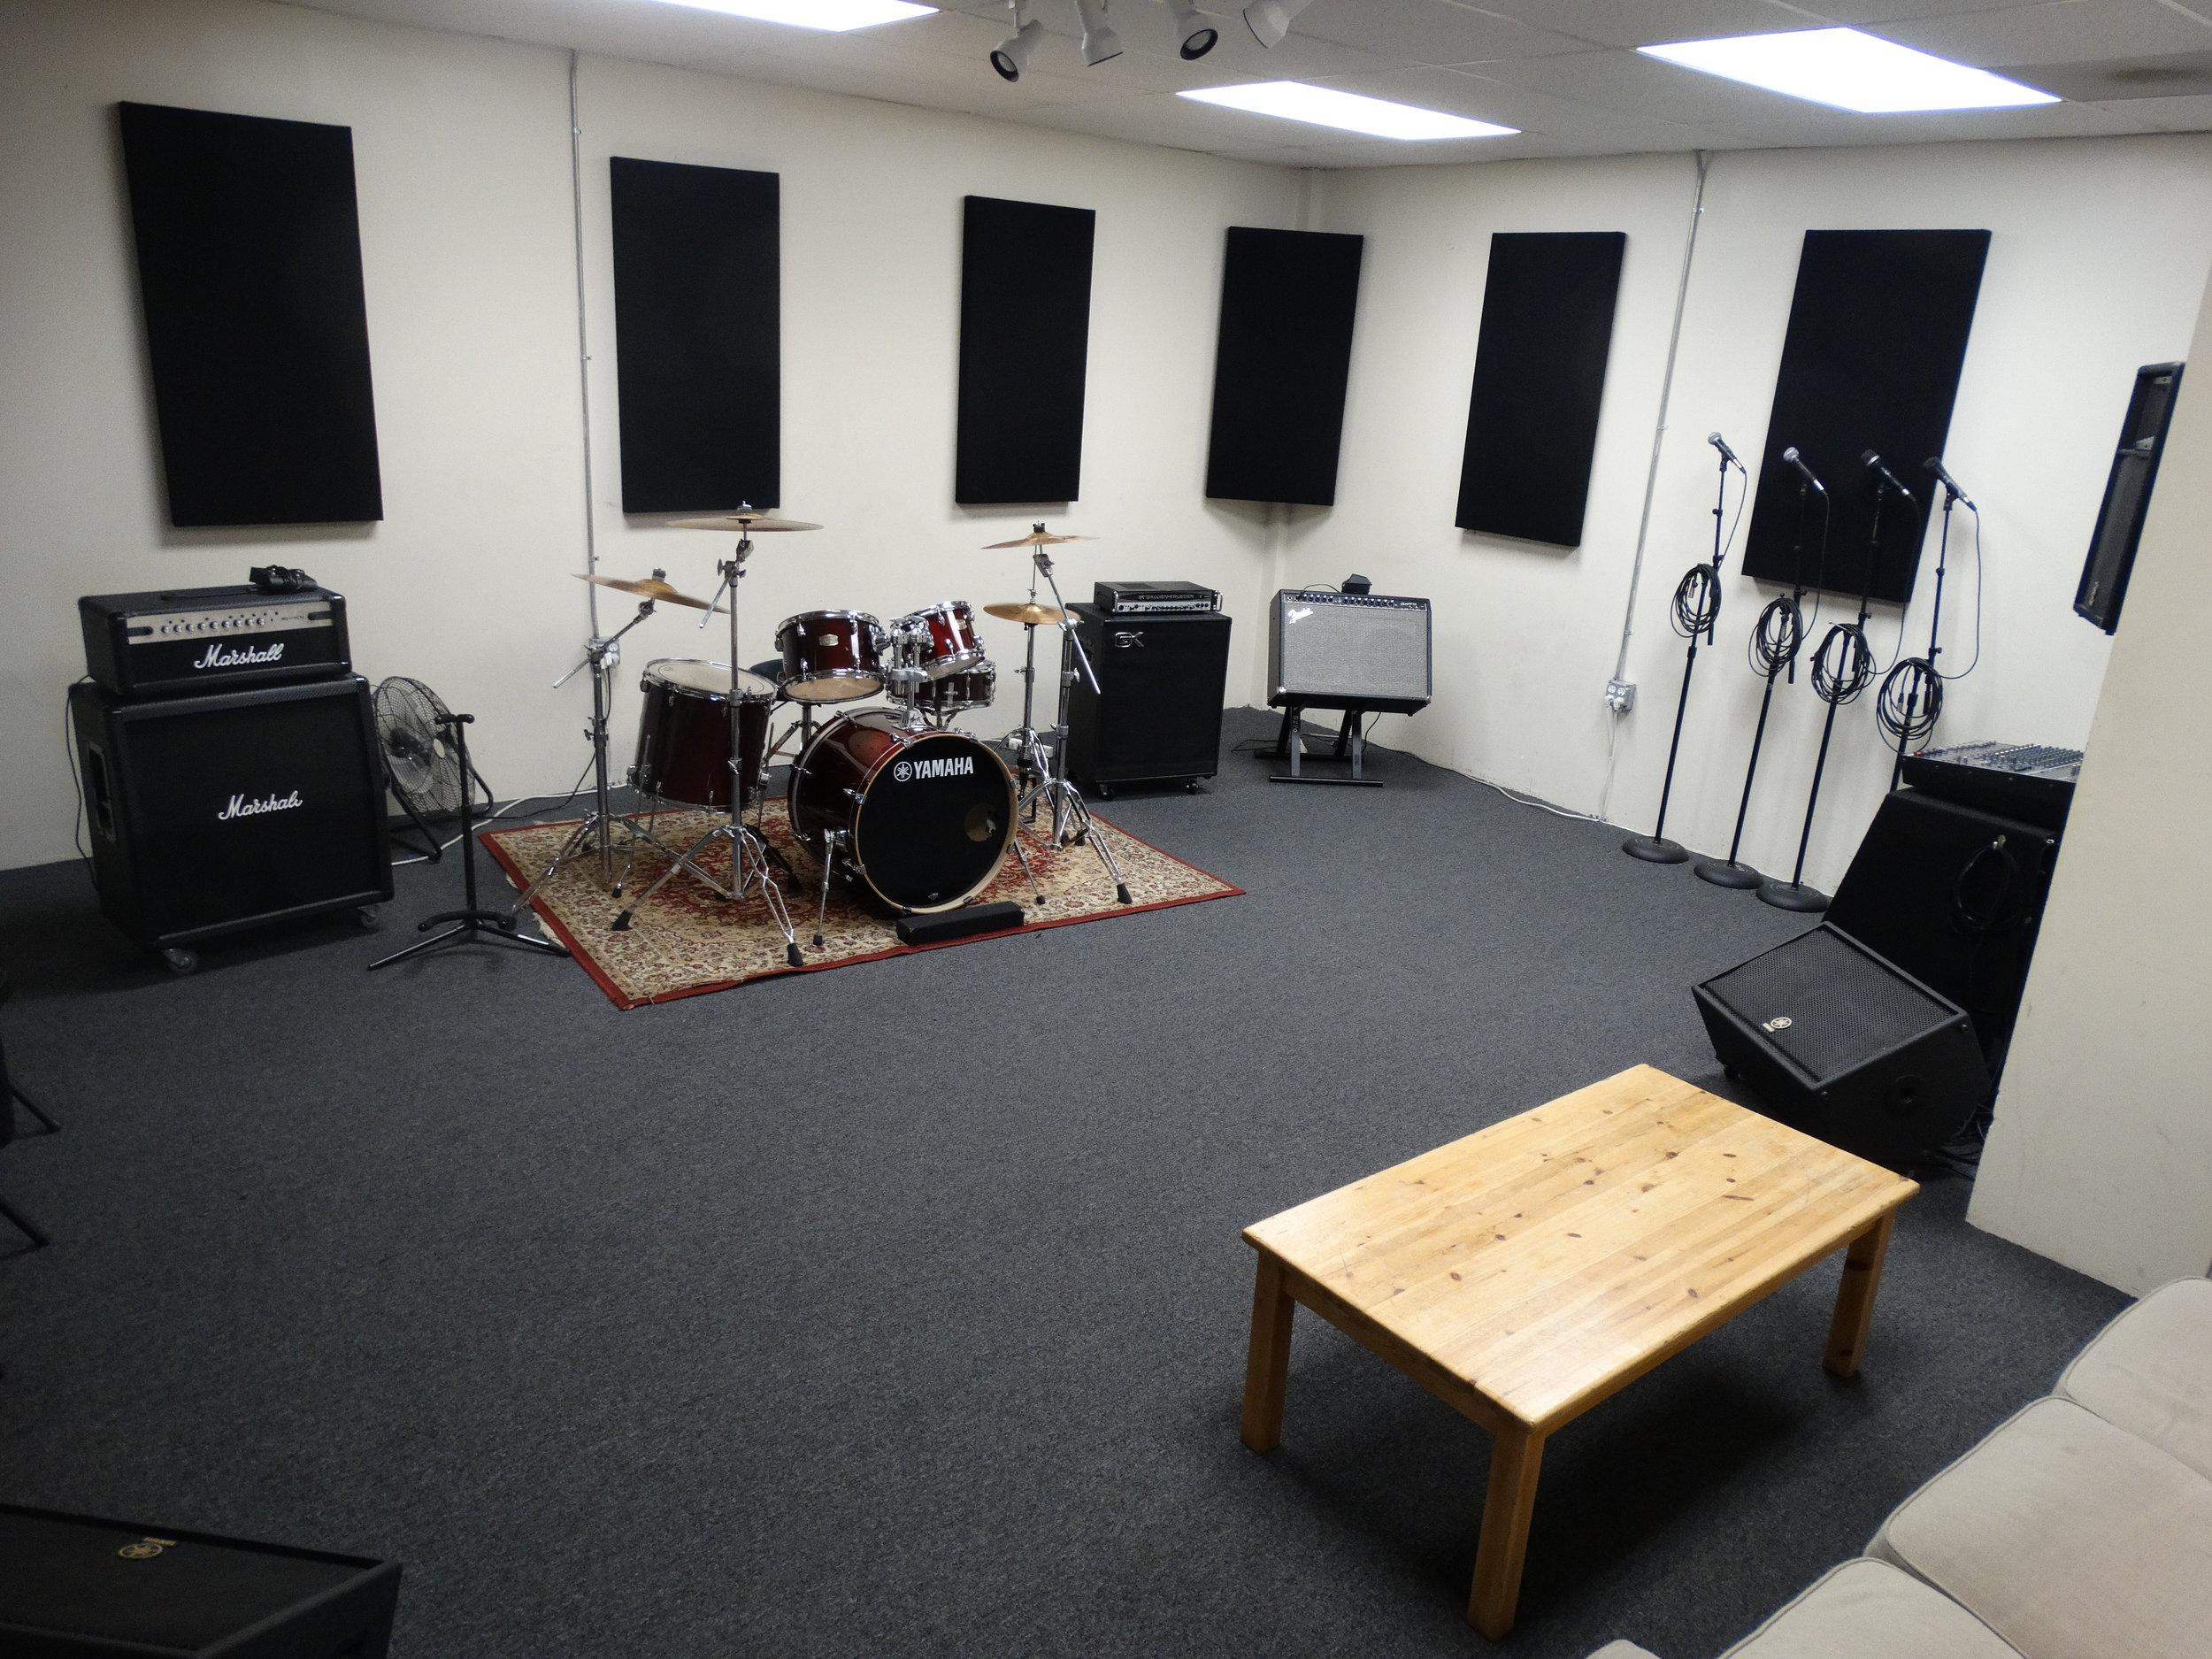 Studio 3 - $27/hour$23/hour day rate M-F 11am-5pm